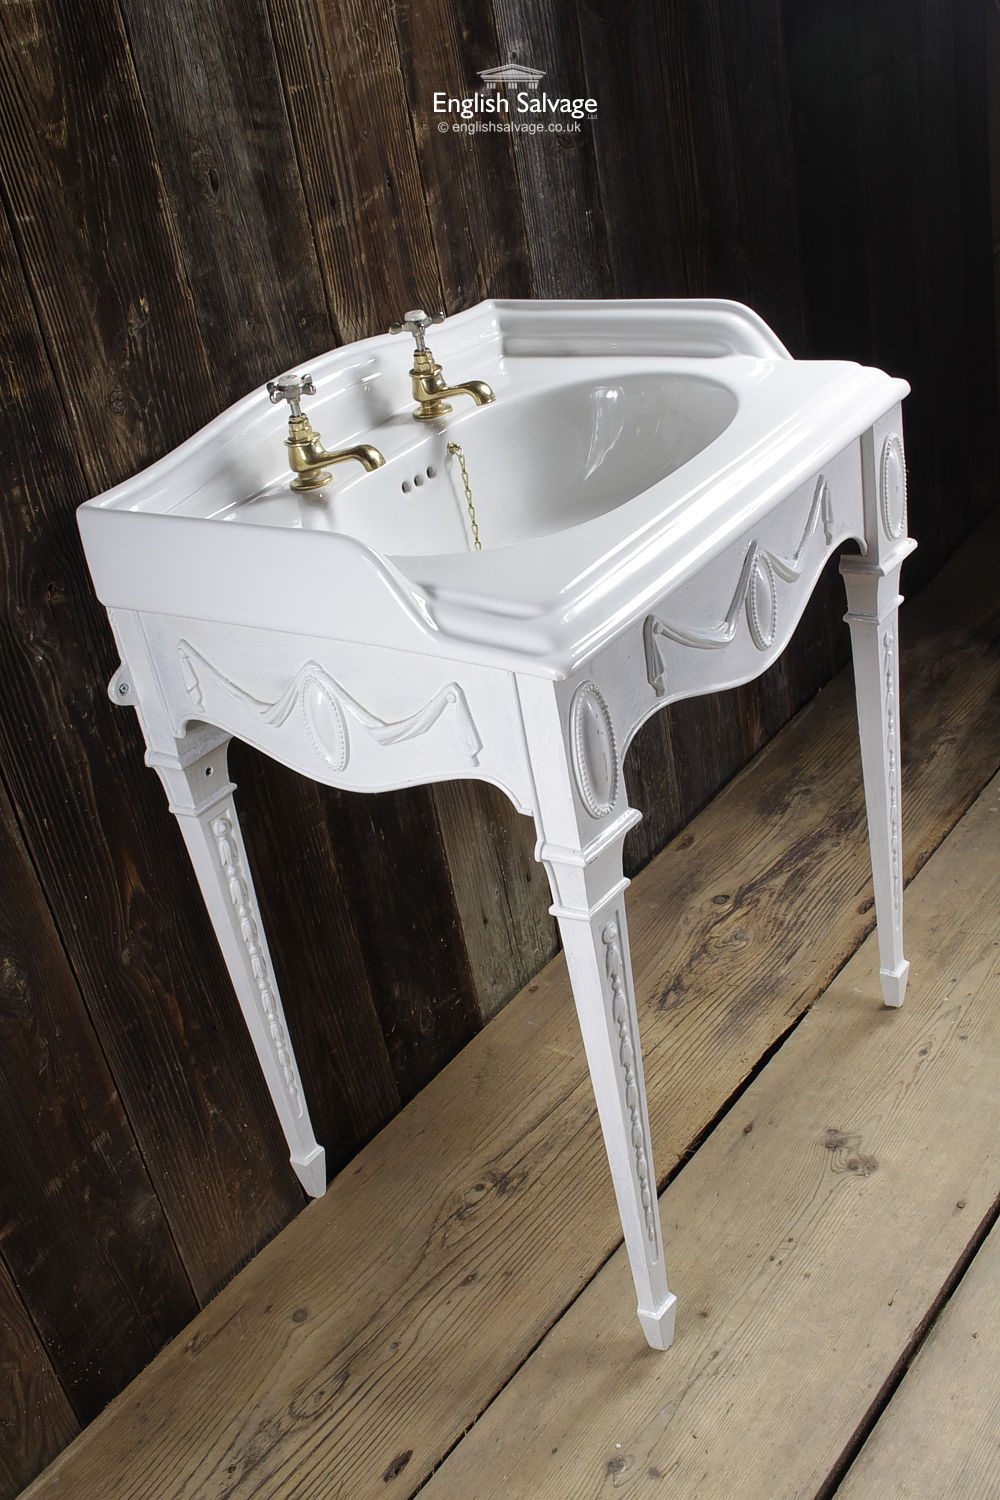 Shanks sink and stand reclaimed porcelain sinks and chrome stands - Reclaimed Basin With An Unusual Four Legged Regency Metal Stand Painted White And Decorated